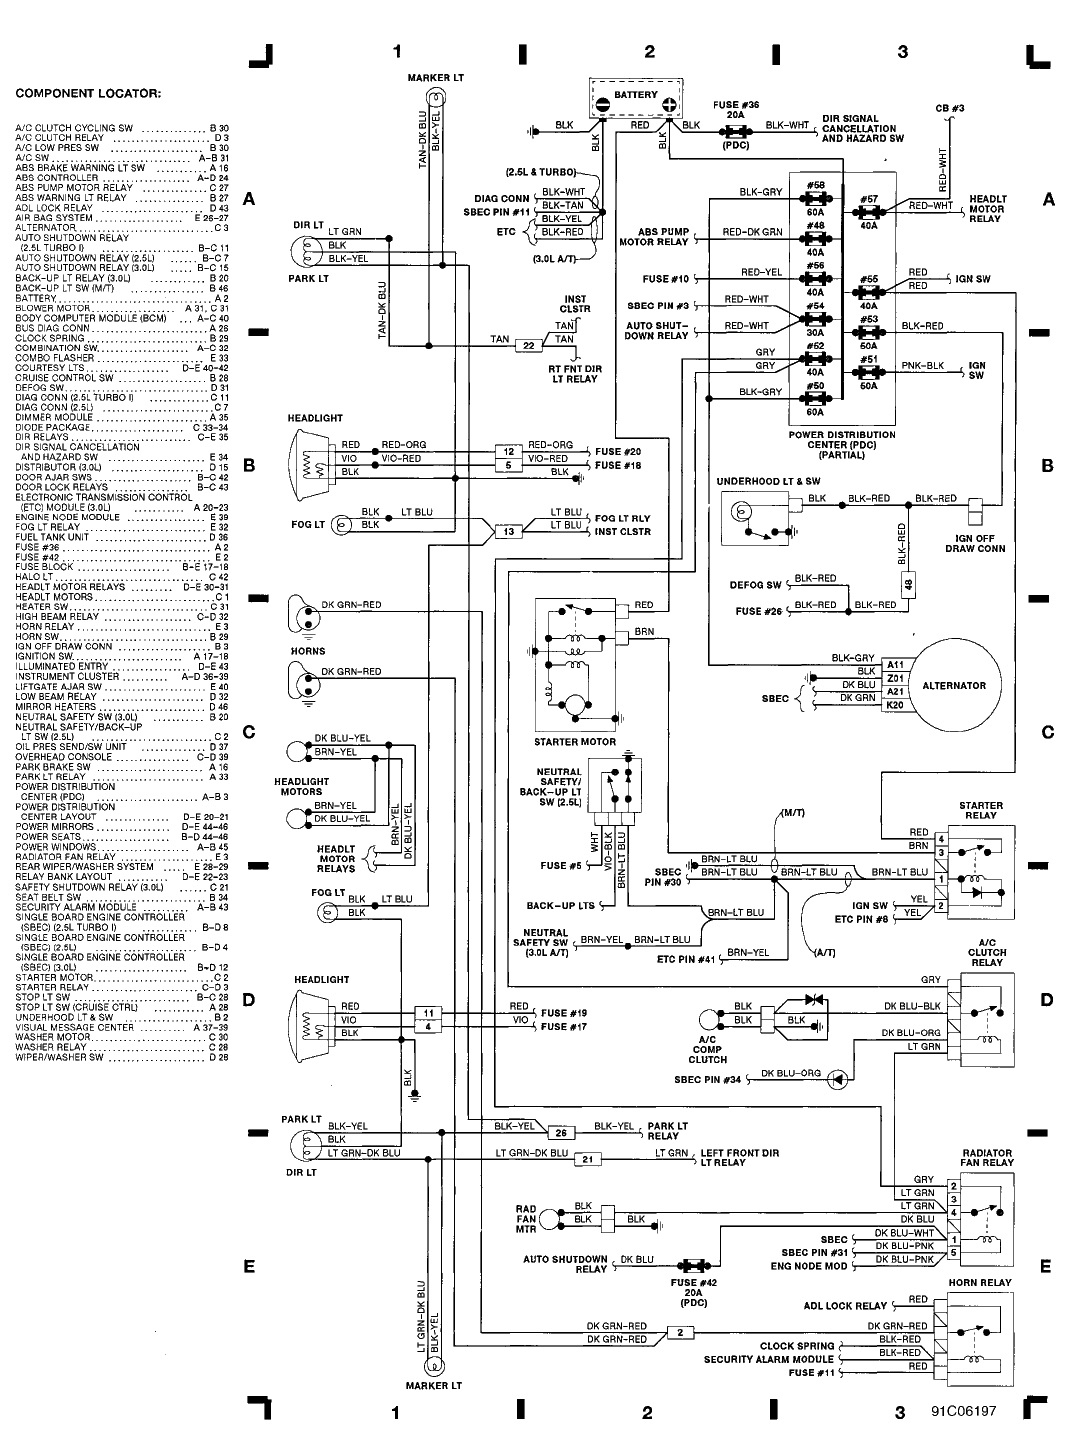 1985 dodge w150 wiring diagram imageresizertool com 1991 Dodge Daytona IROC 1986 Dodge Daytona